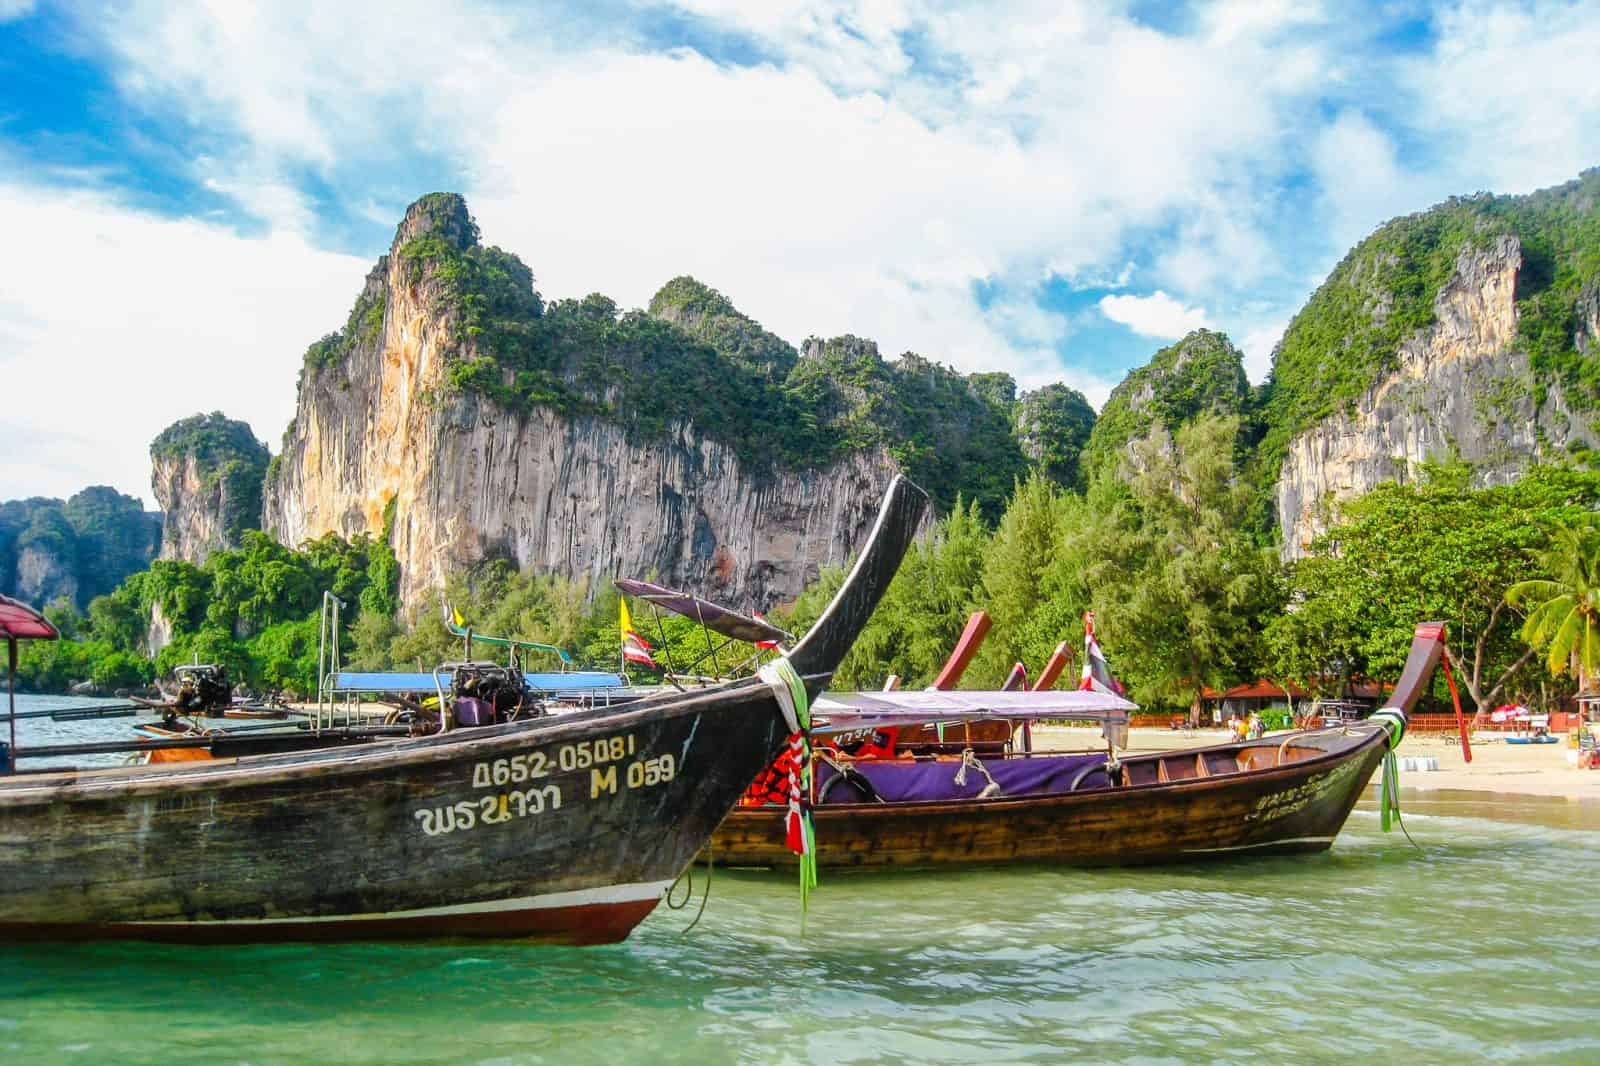 Boats in Railay, Thailand